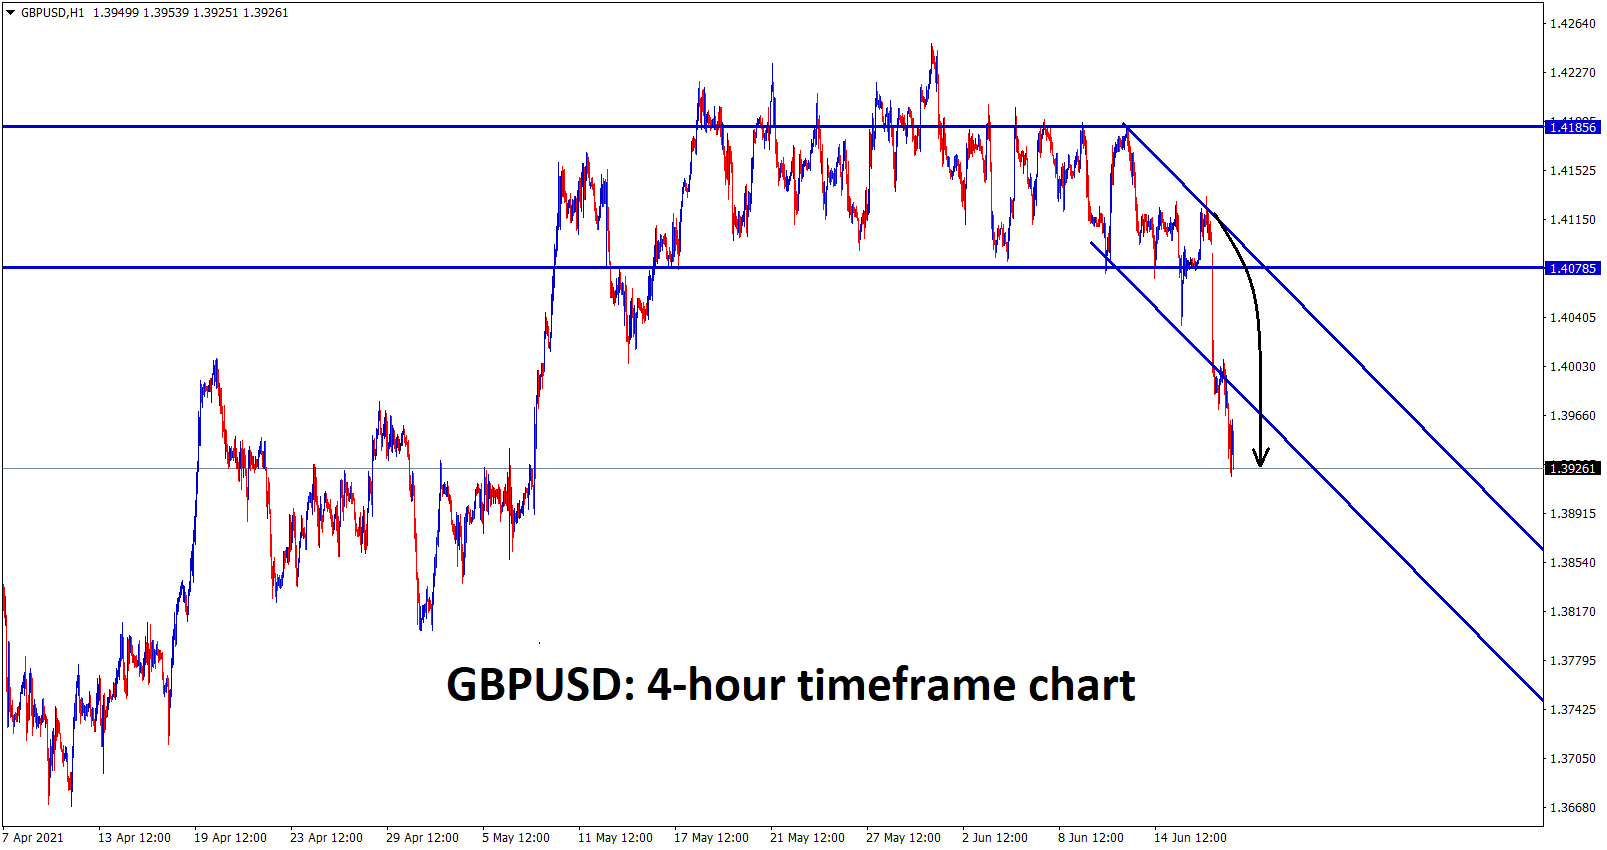 GBPUSD has broken the support area and downtrend line